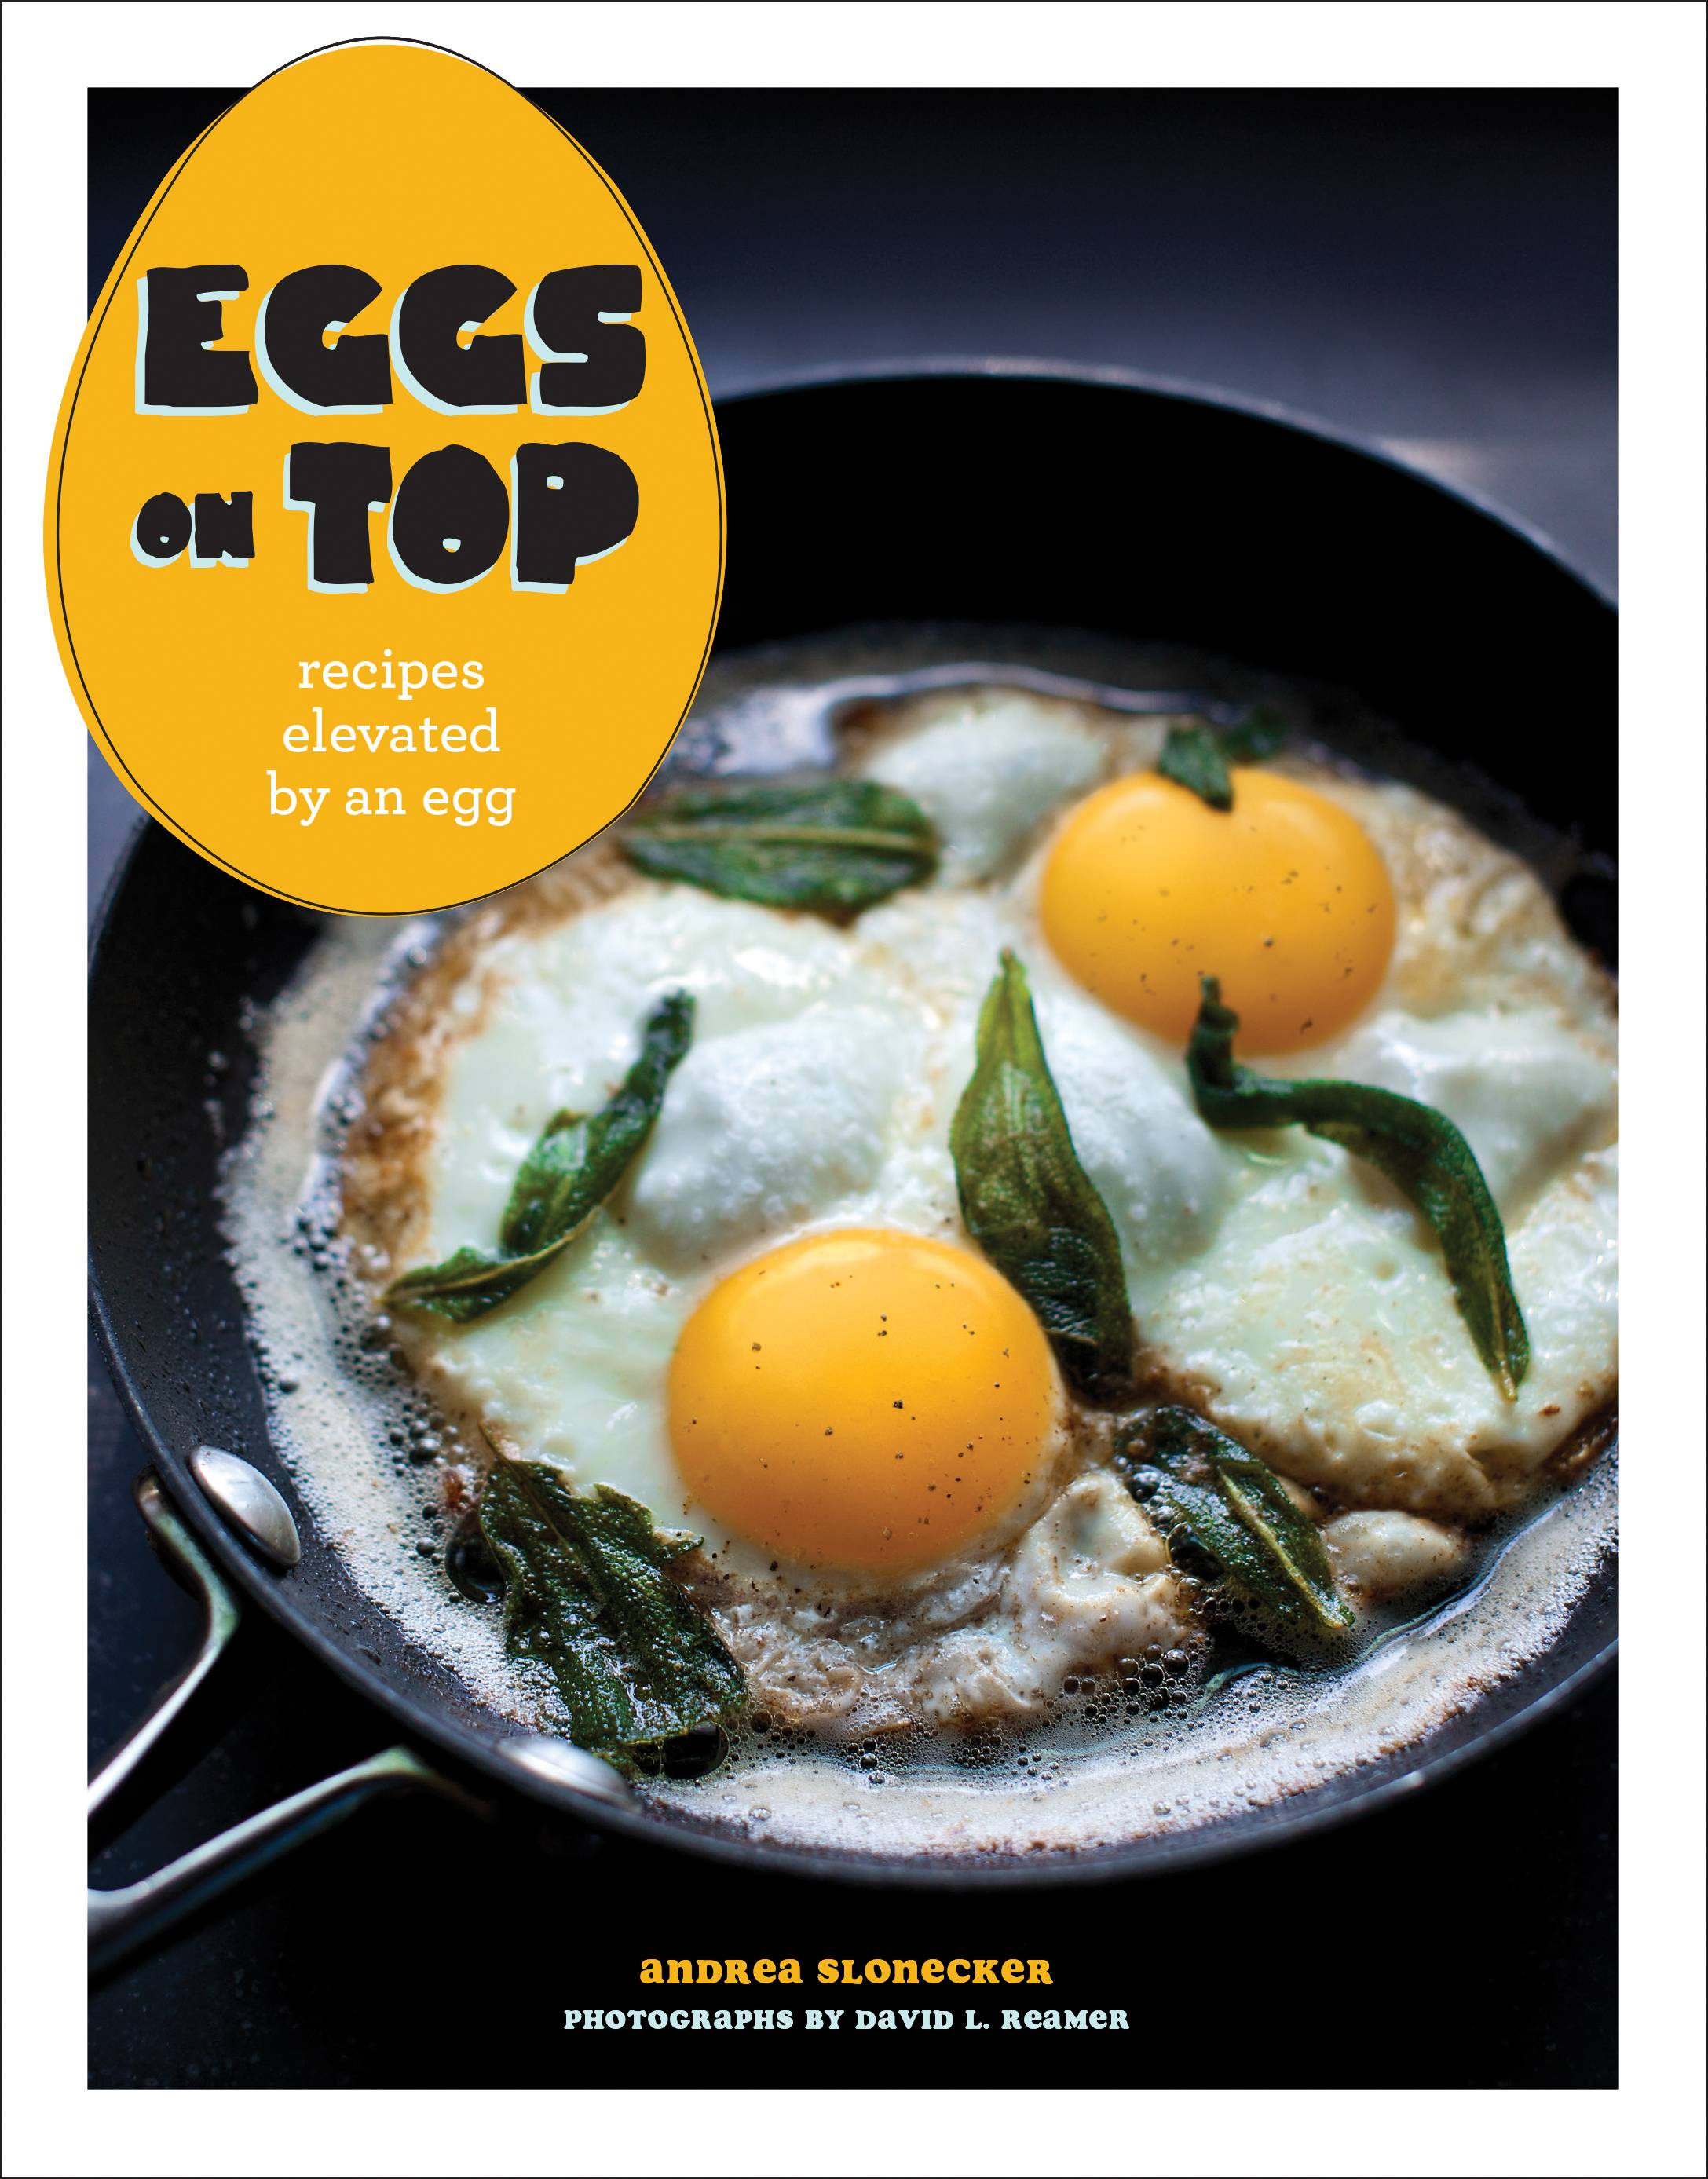 """Eggs on Top: Recipes Elevated by an Egg,"" by Andrea Slonecker"